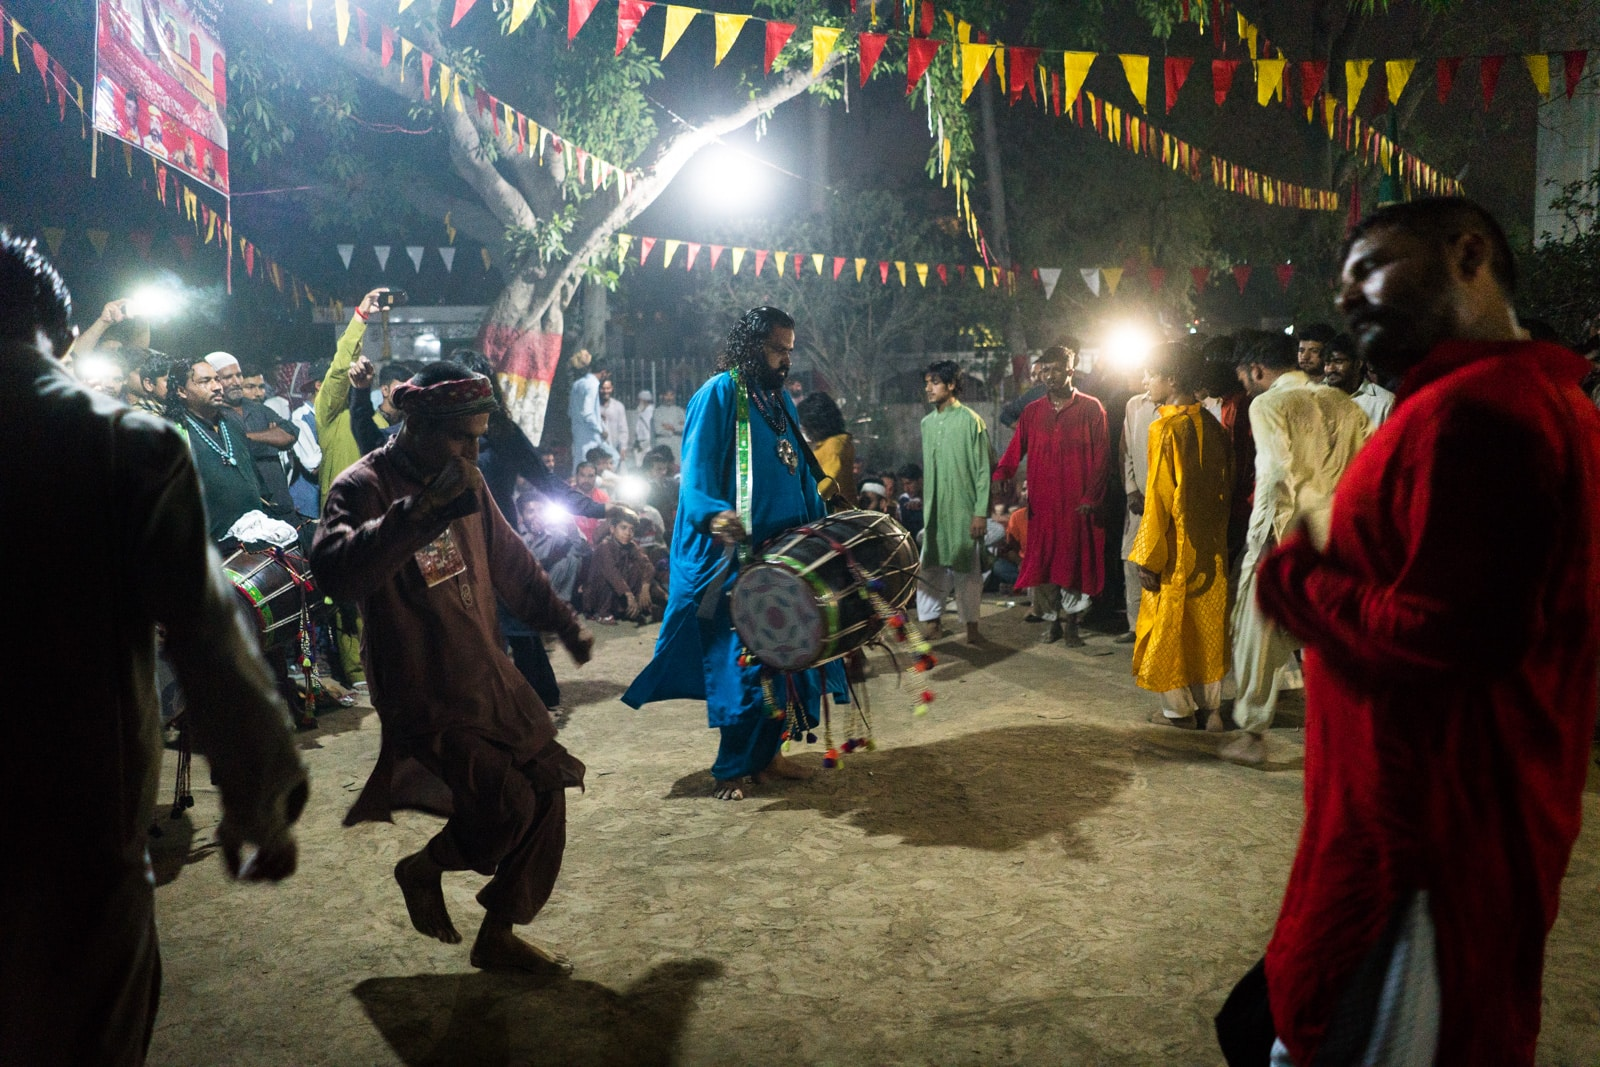 Pakistan bucket list - Sufis dancing to dhamaal at the Madhu Lal Hussain shrine in Lahore - Lost With Purpose travel blog